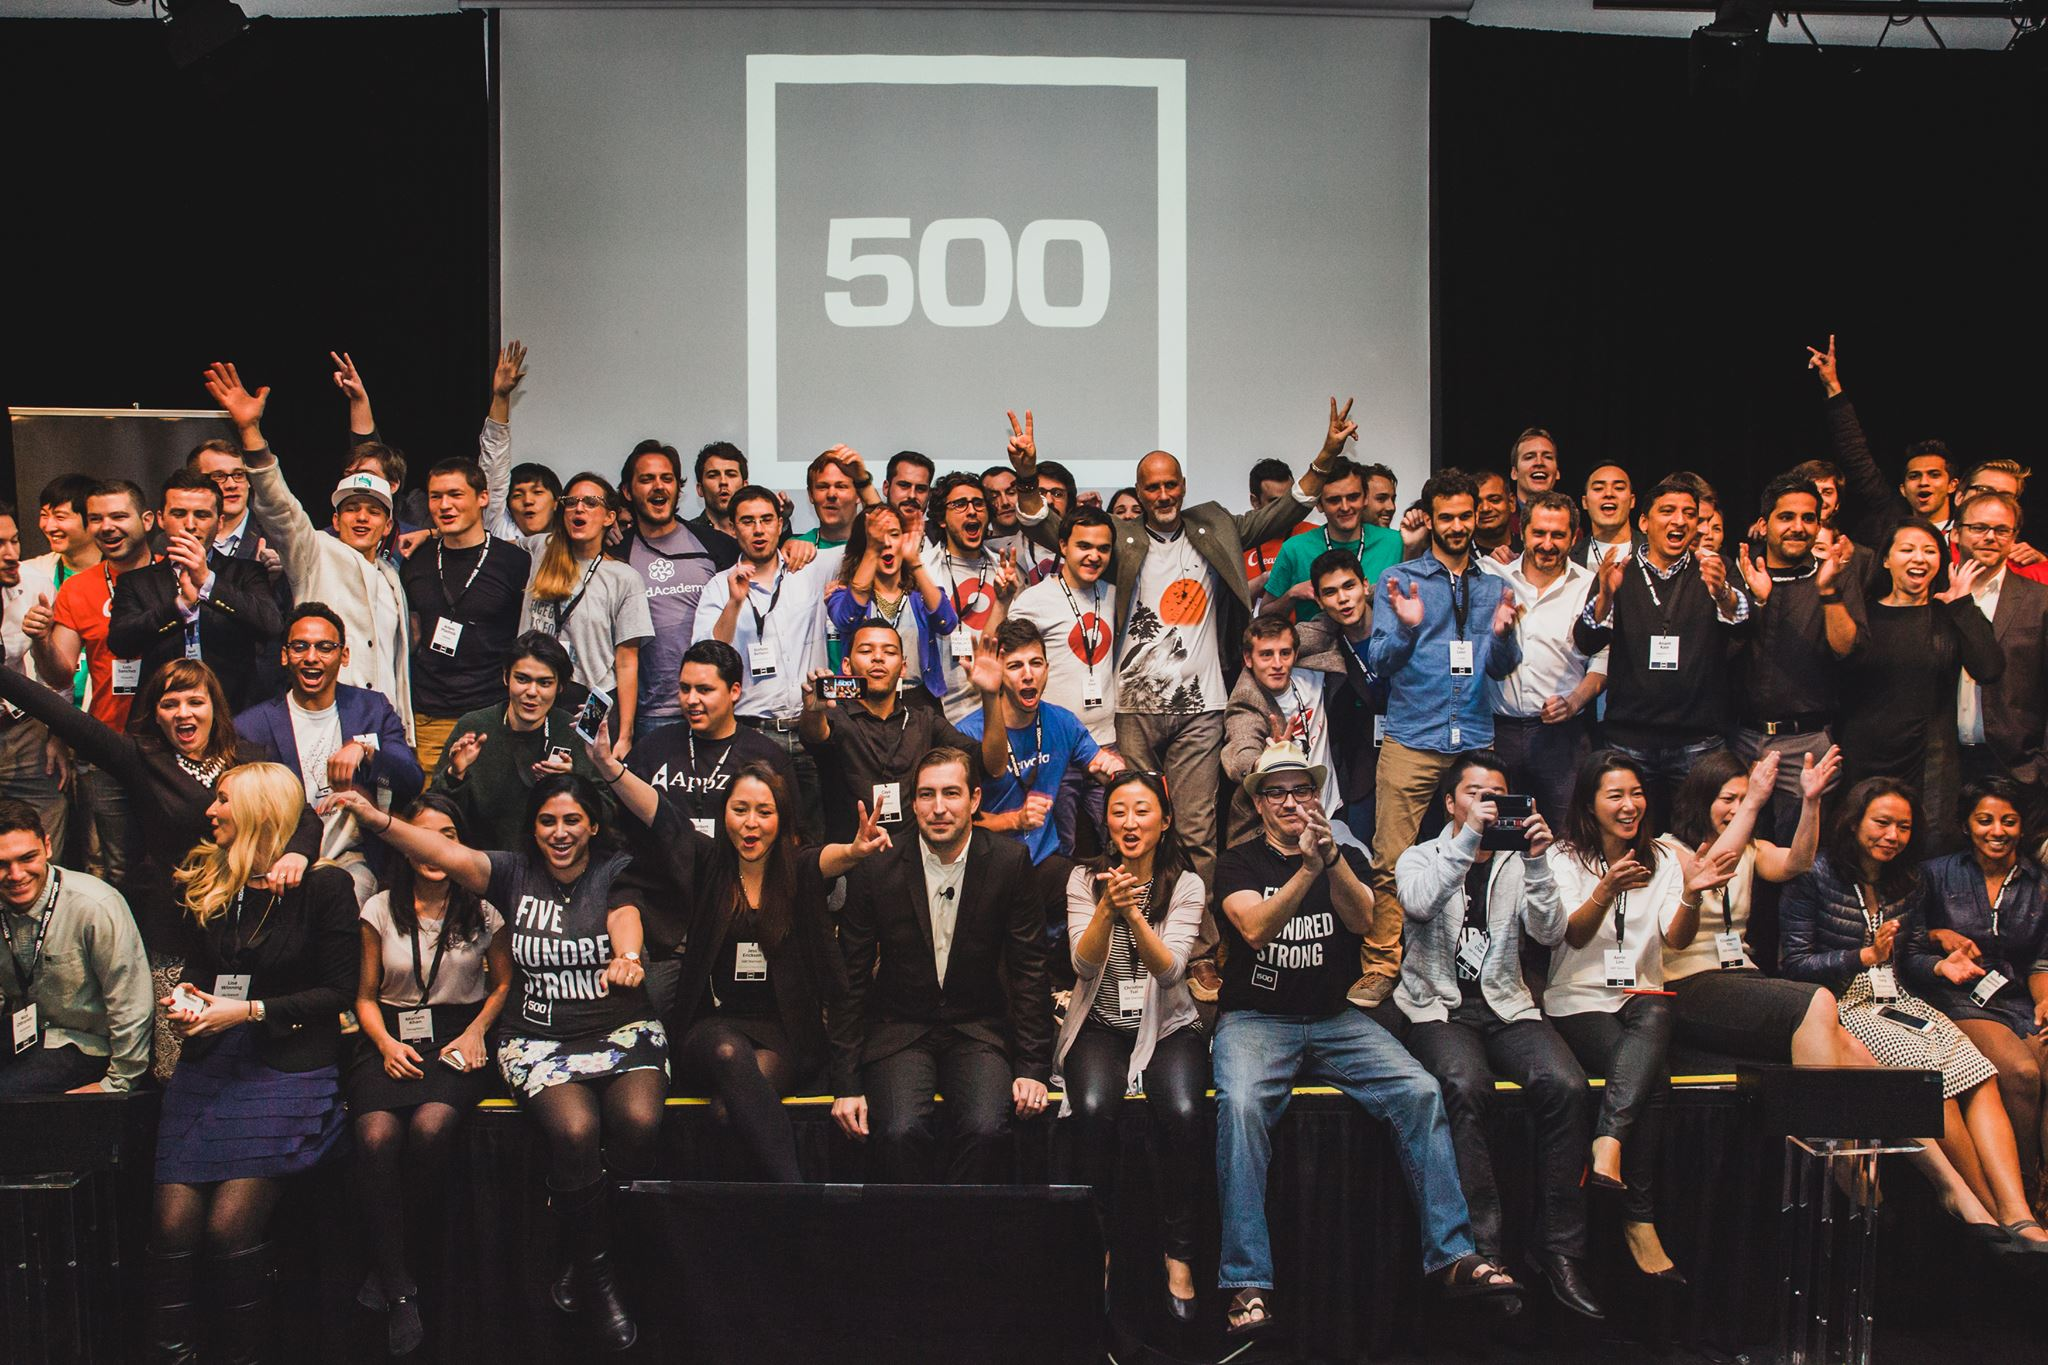 500 Startups was founded by Dave McClure and Christine Tsai in 2010.